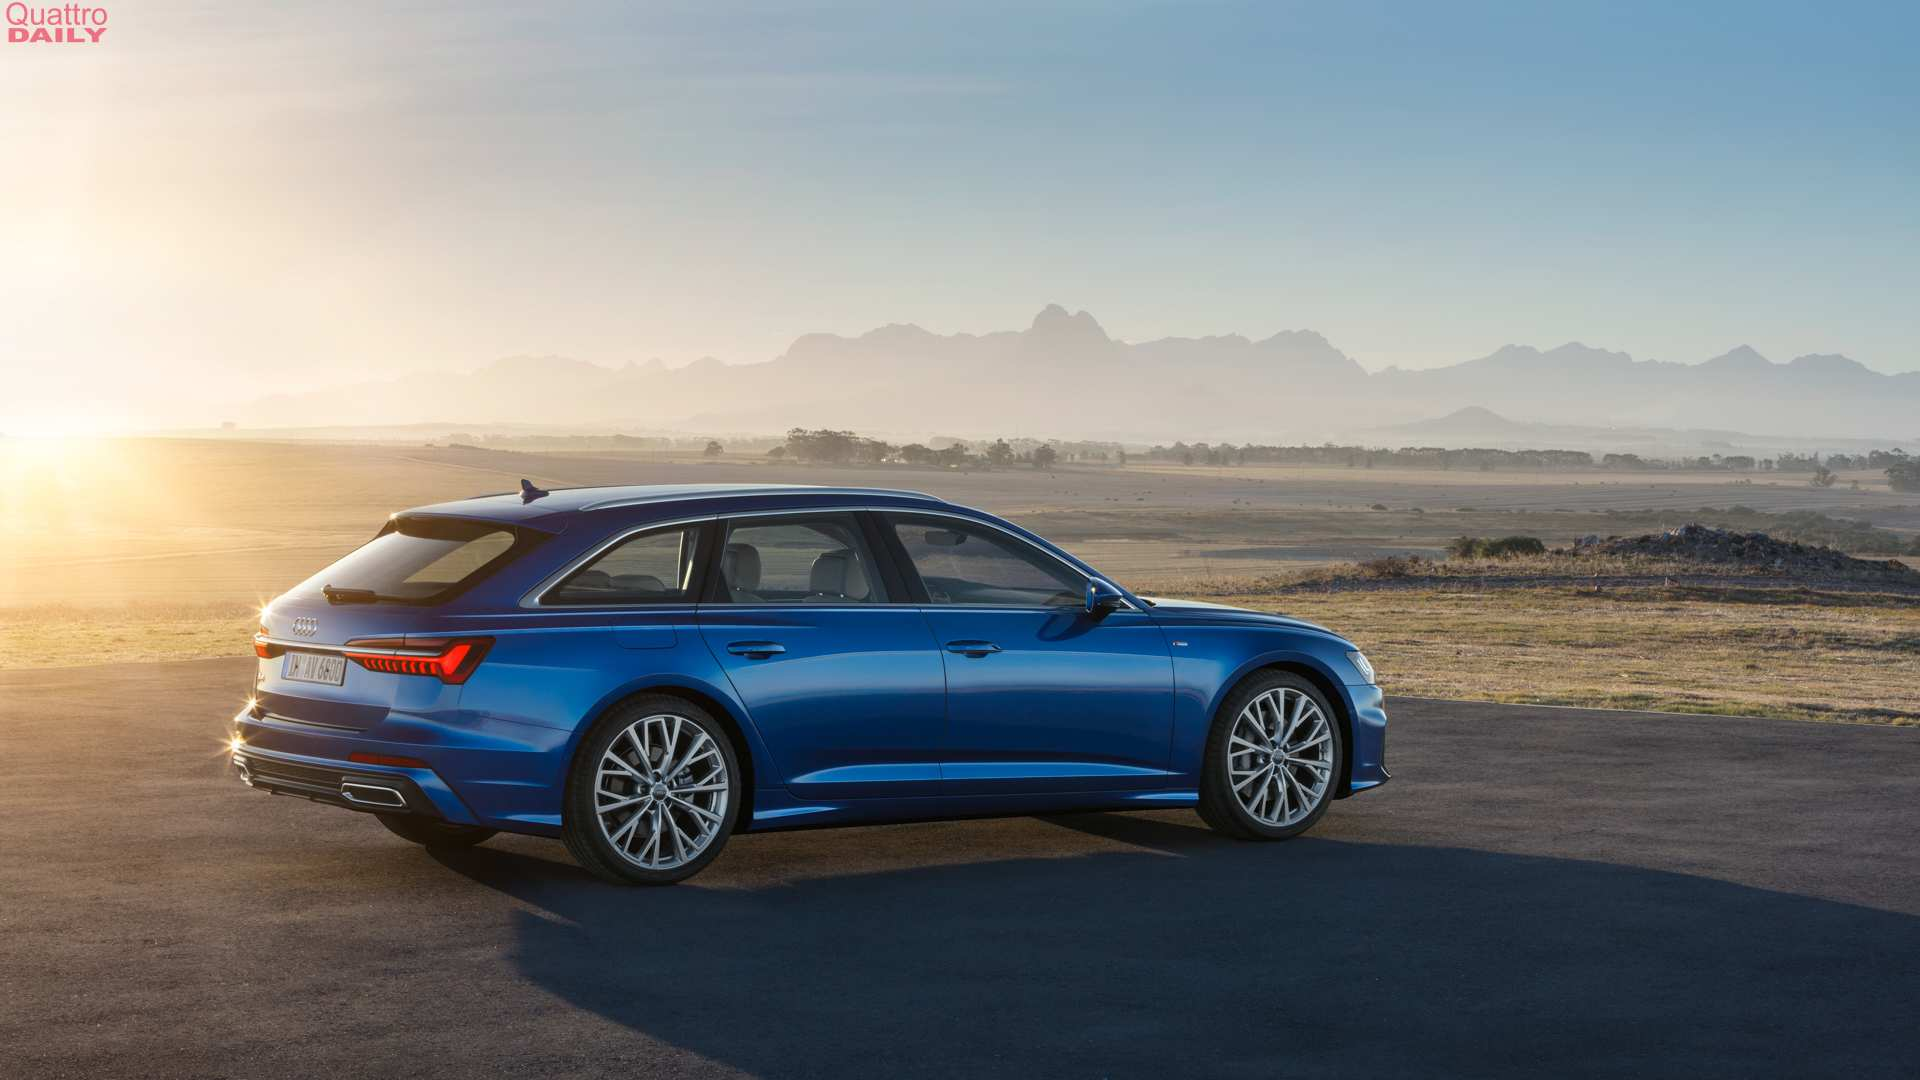 88 Best Review 2020 Audi Allroad Model with 2020 Audi Allroad